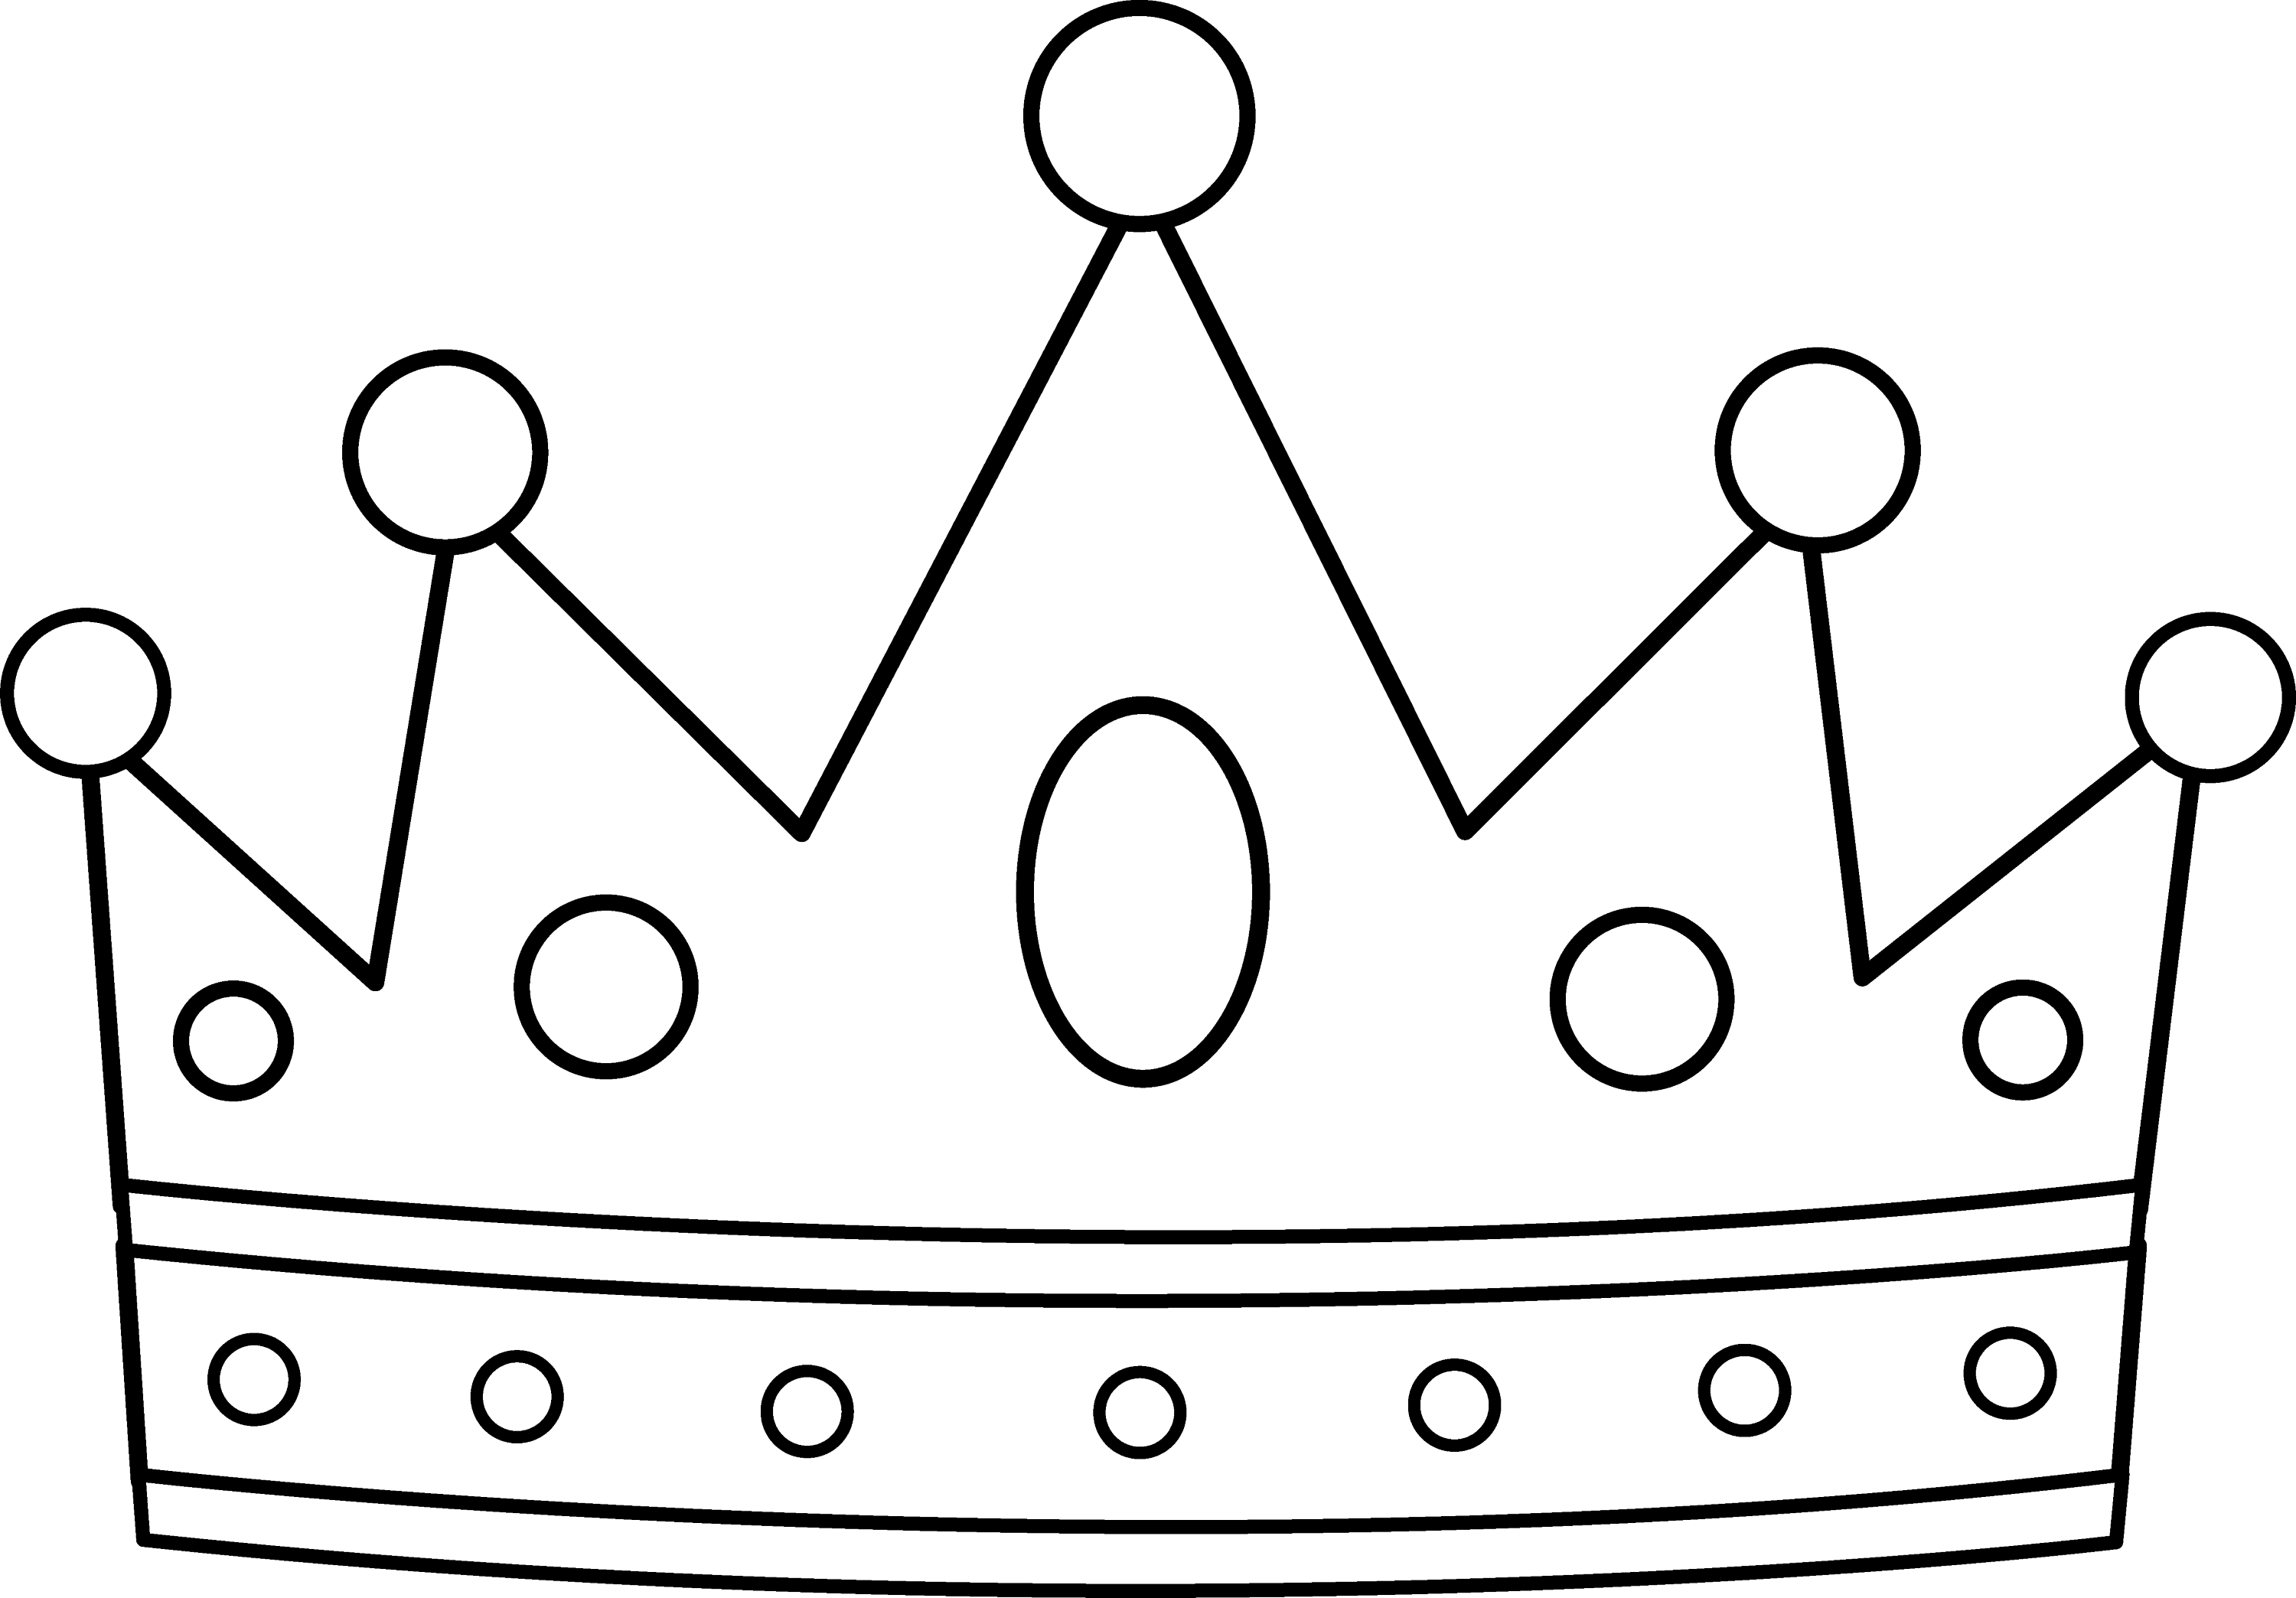 Simple king crown outline - photo#6